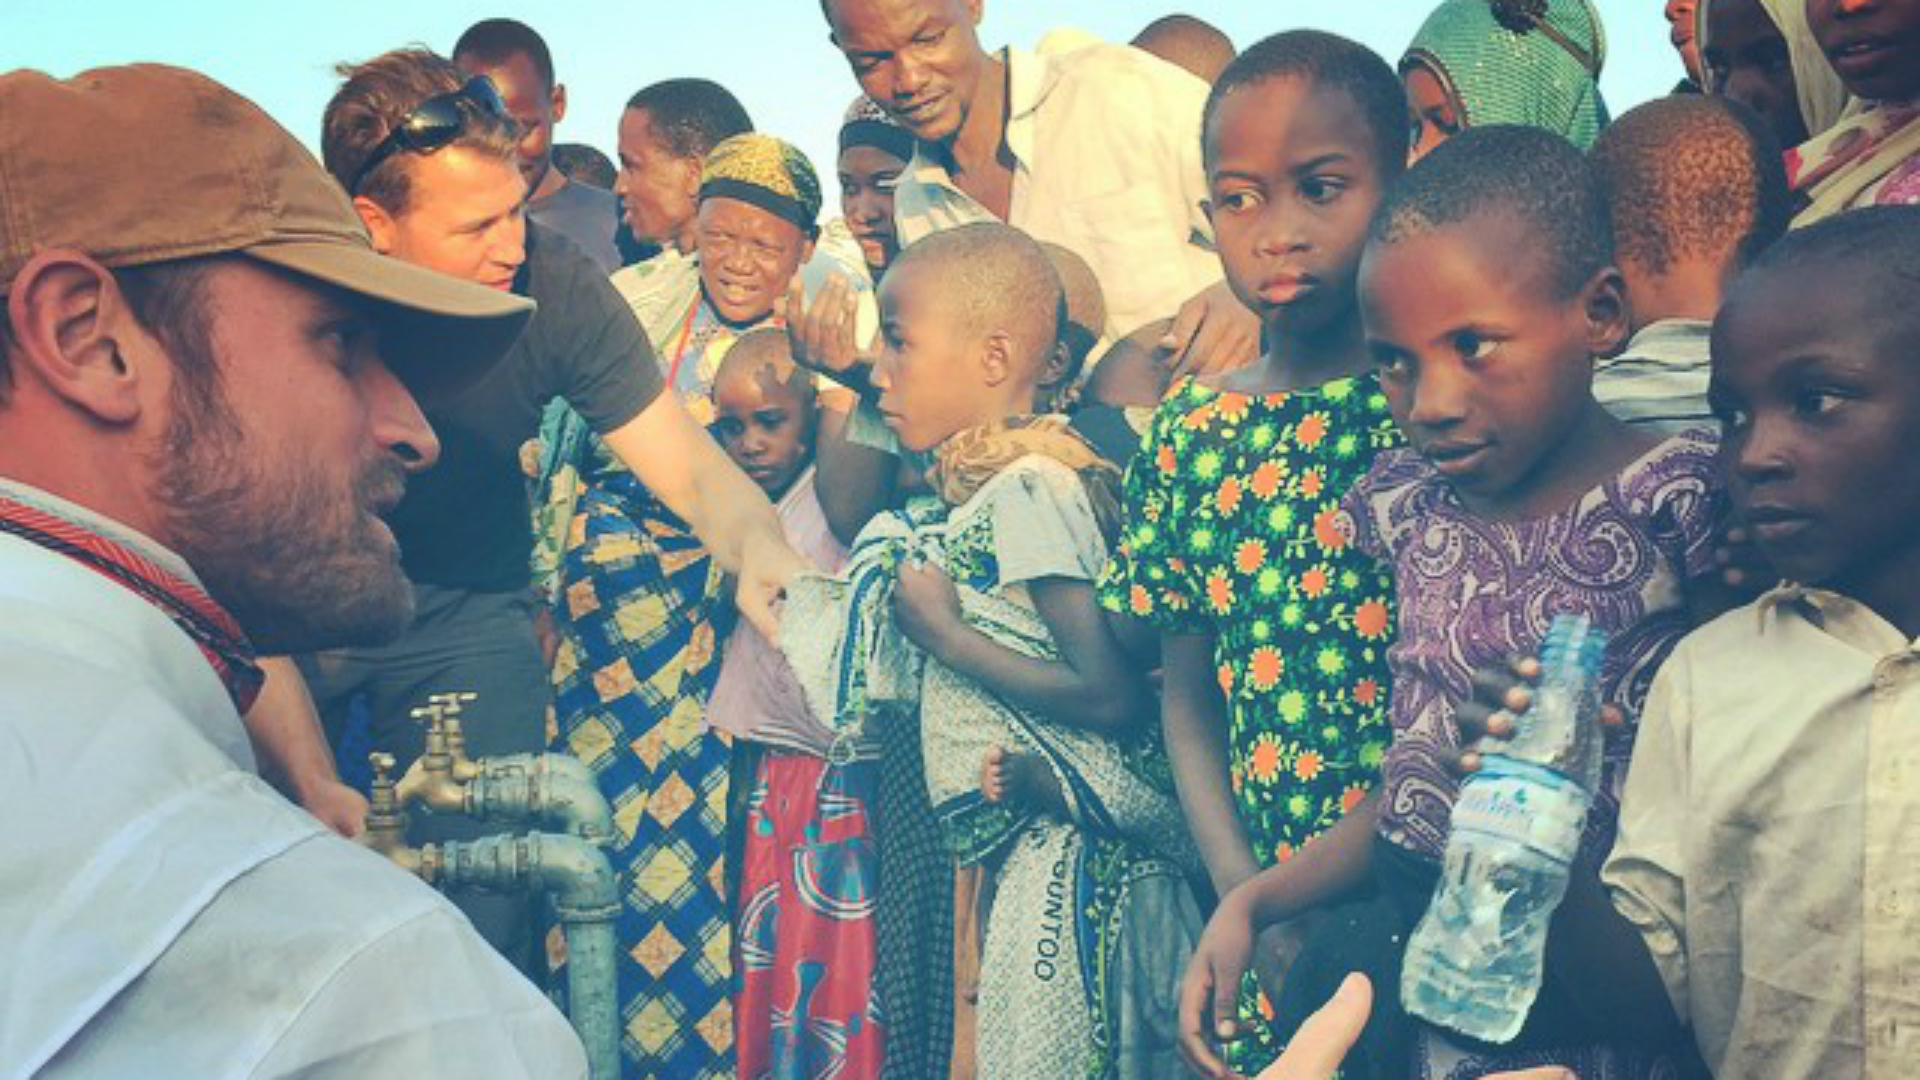 Chris Long travels to Tanzania, provides clean water